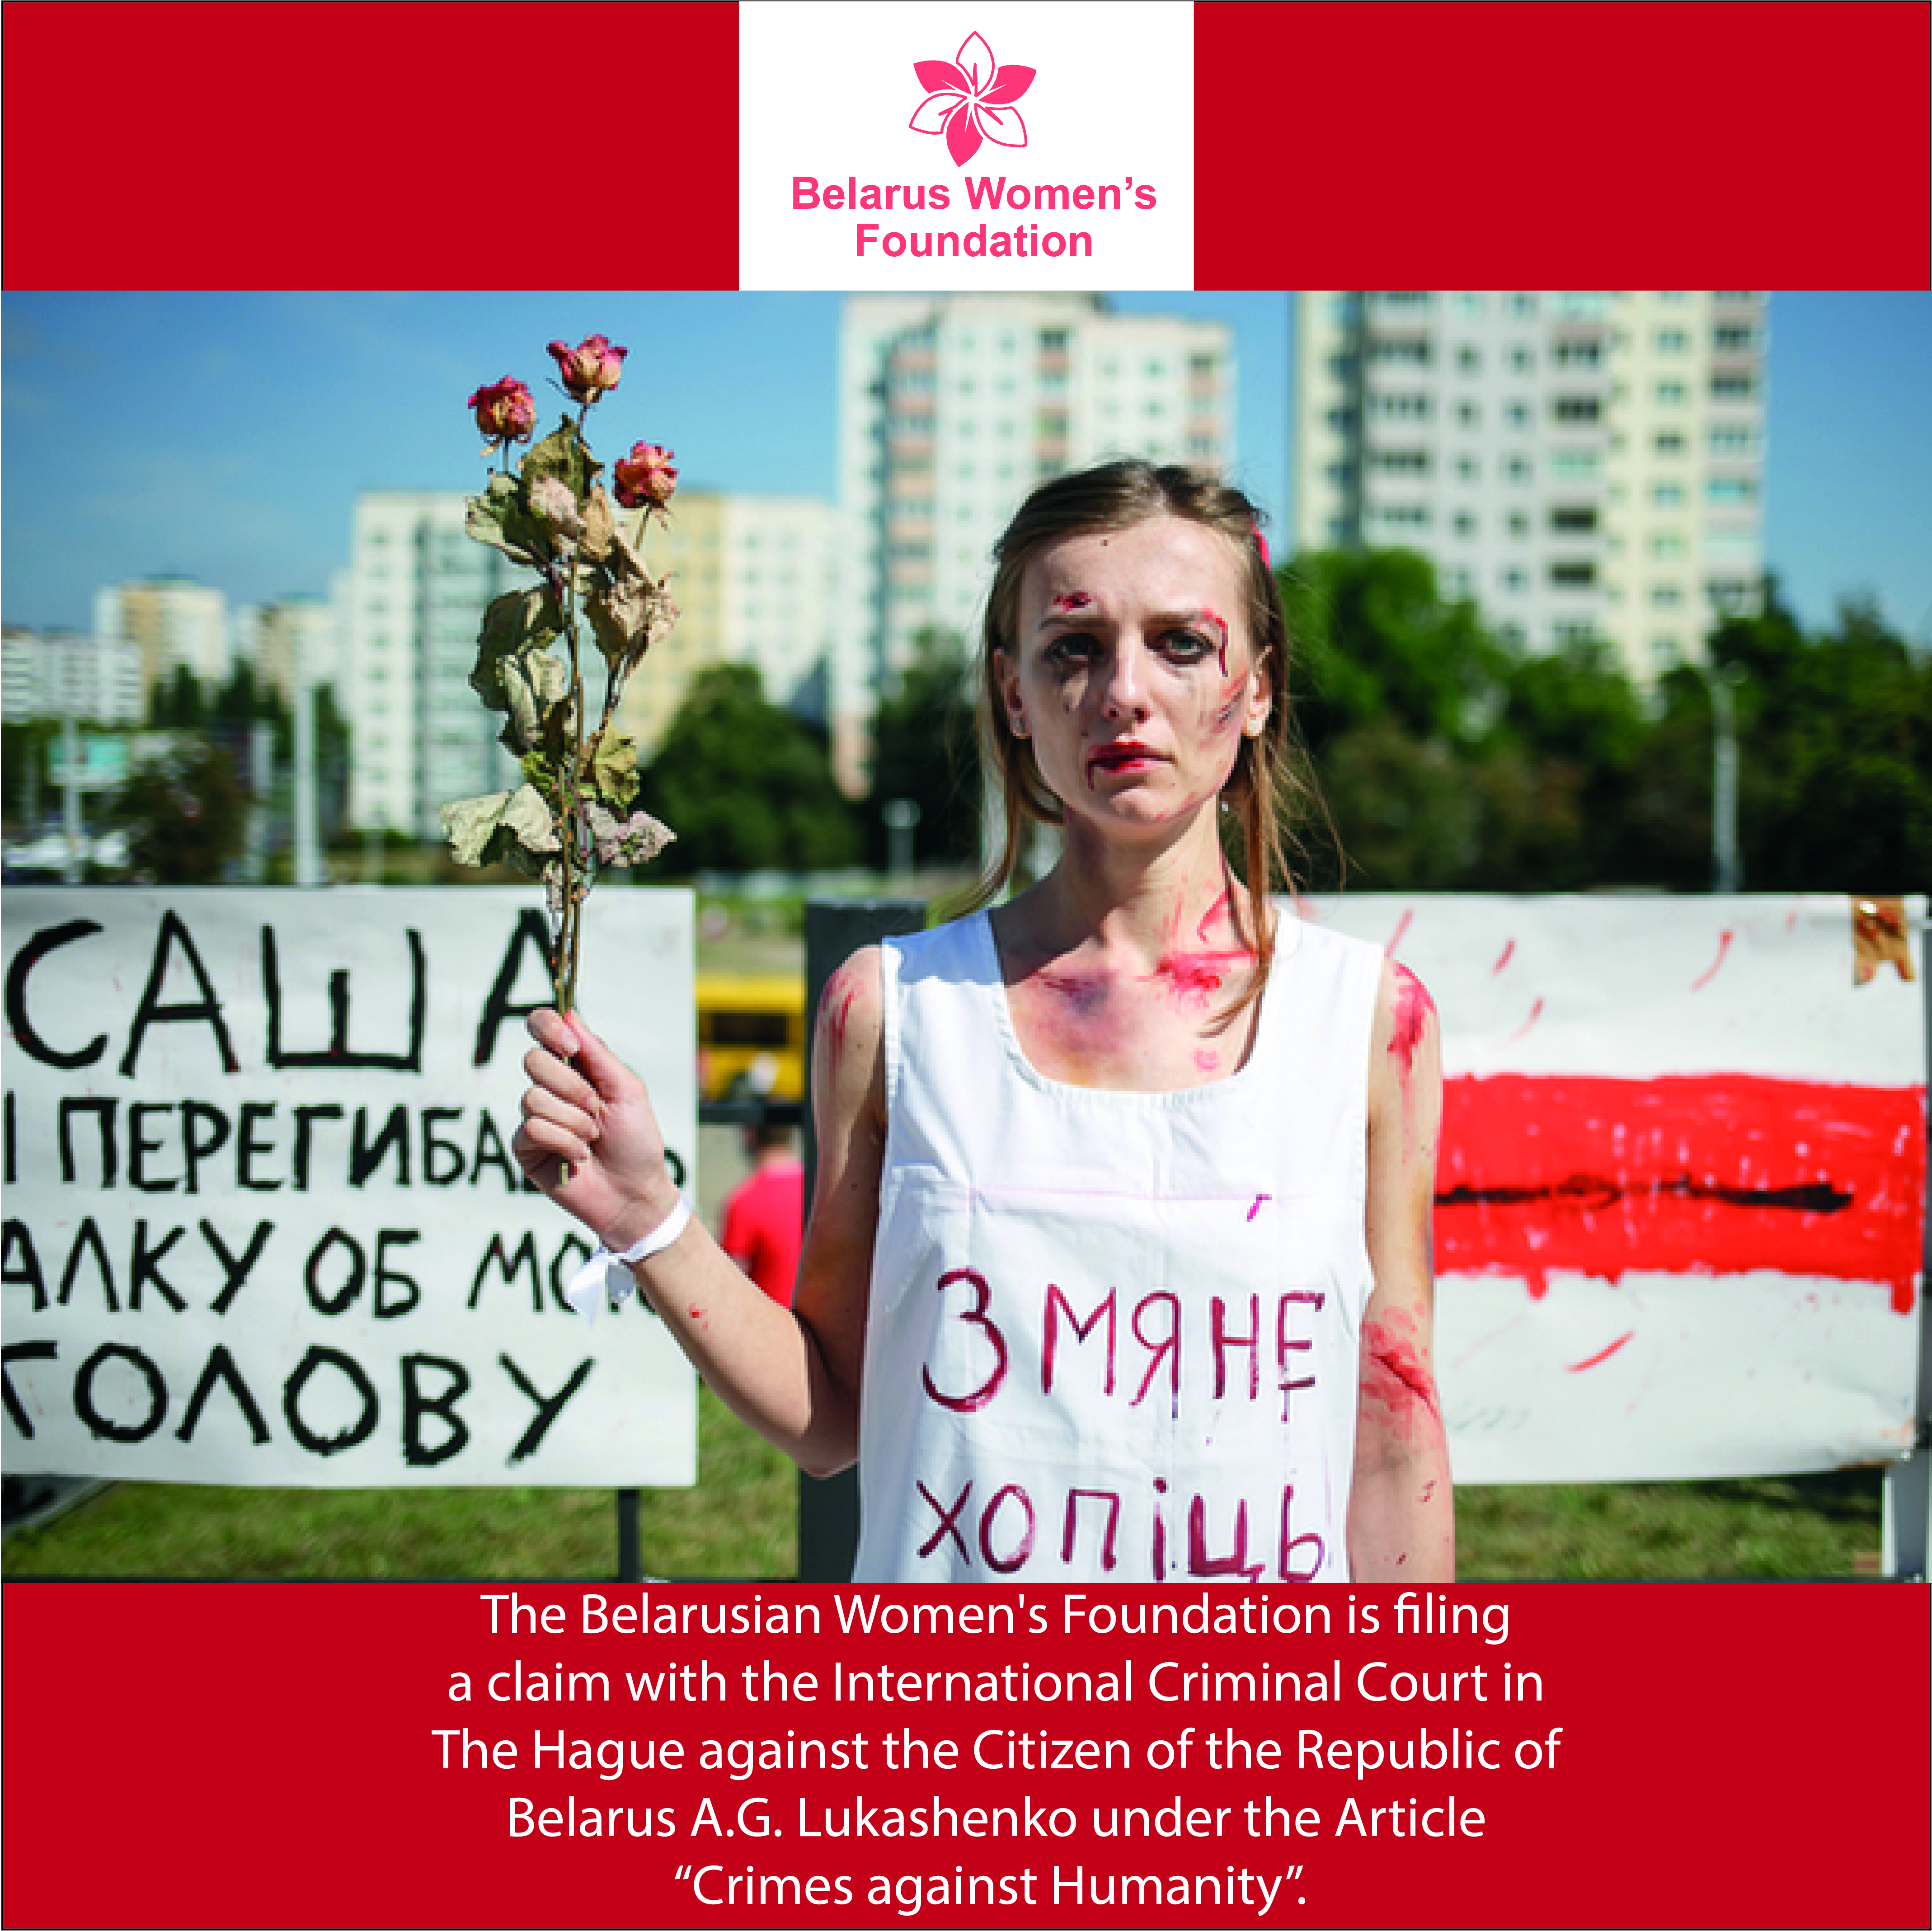 """The Belarusian Women's Foundation is filing a claim with the International Criminal Court in The Hague against the Citizen of the Republic of Belarus A.G. Lukashenko under the Article """"Crimes against Humanity""""."""